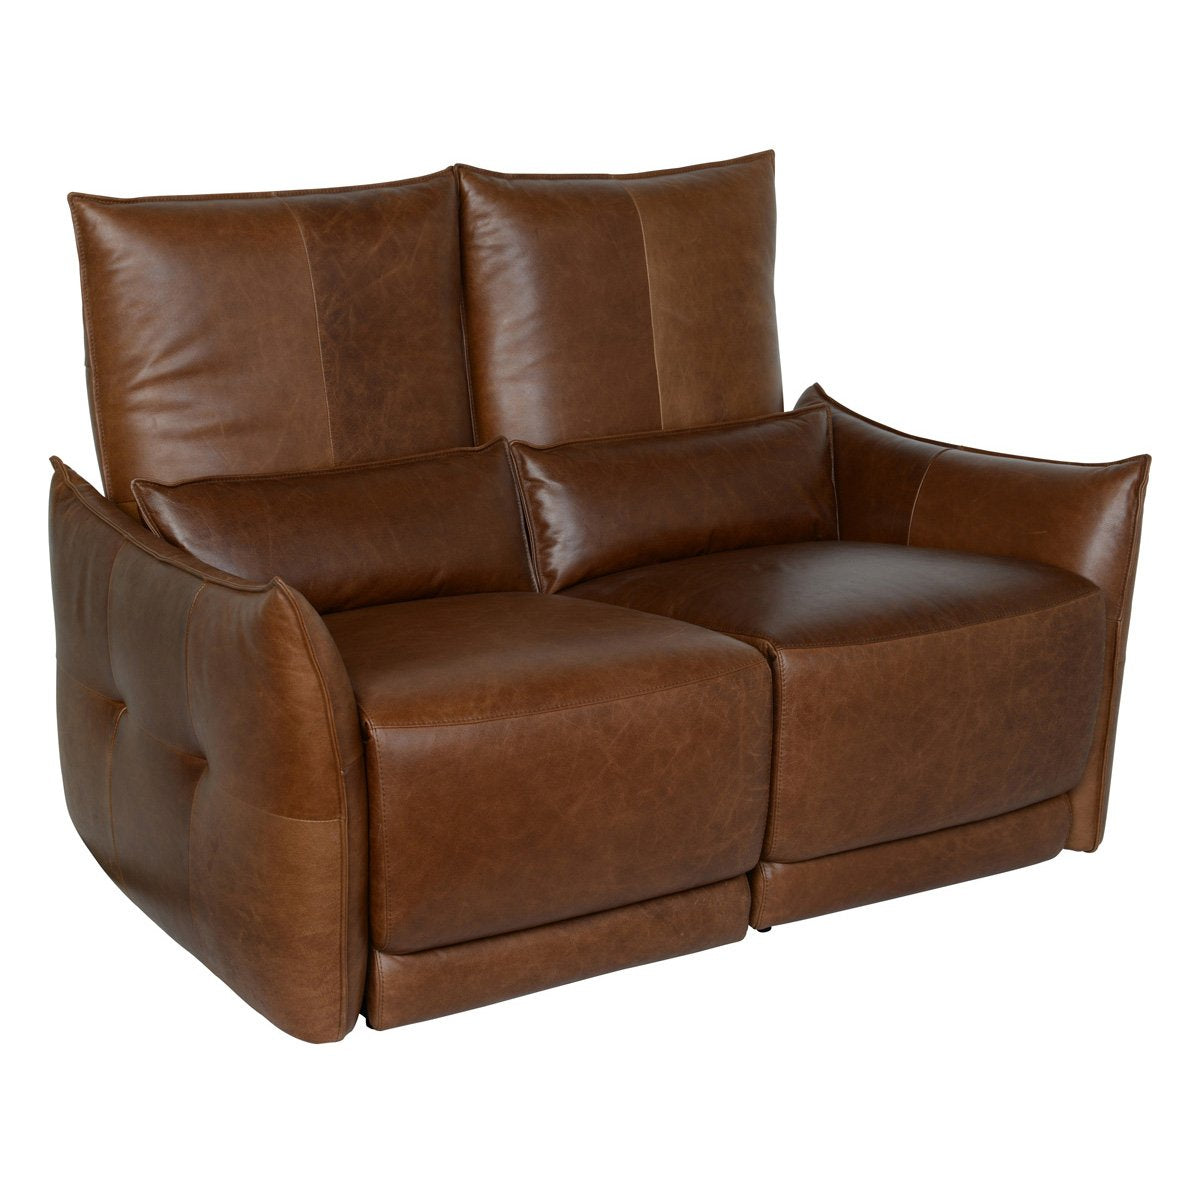 Amsterdam Recliner Loveseat